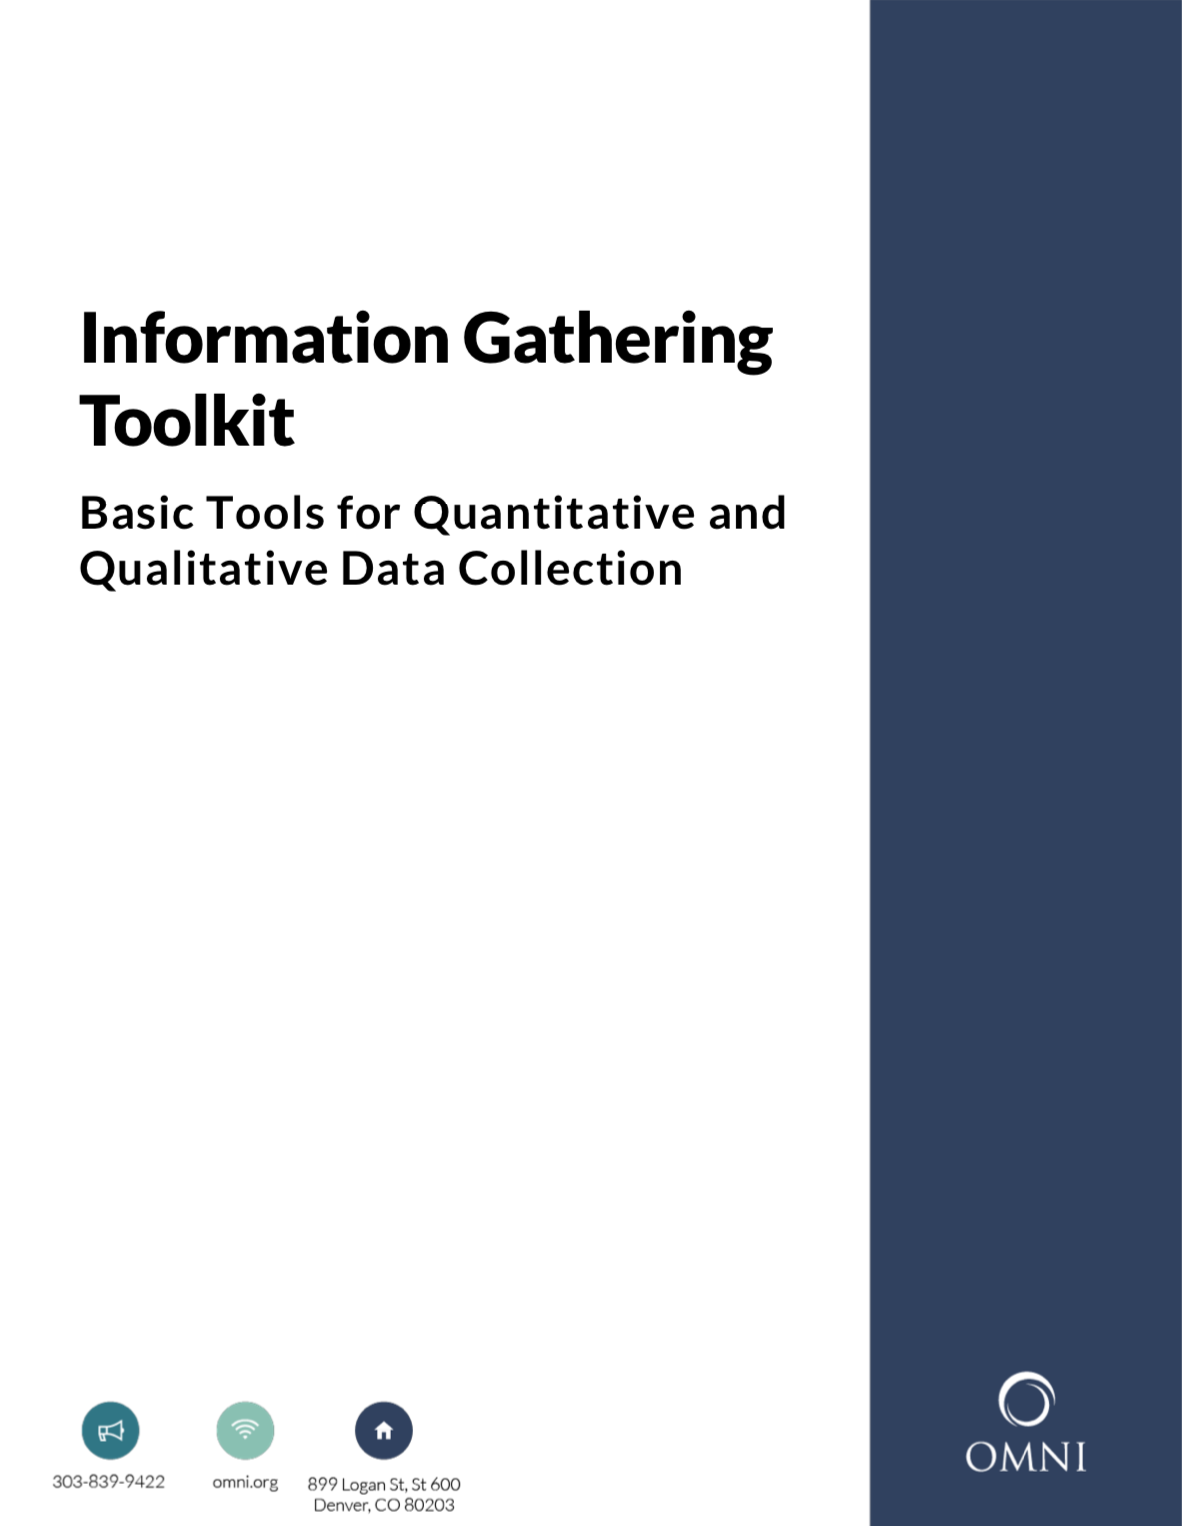 information gathering toolkit cover.png